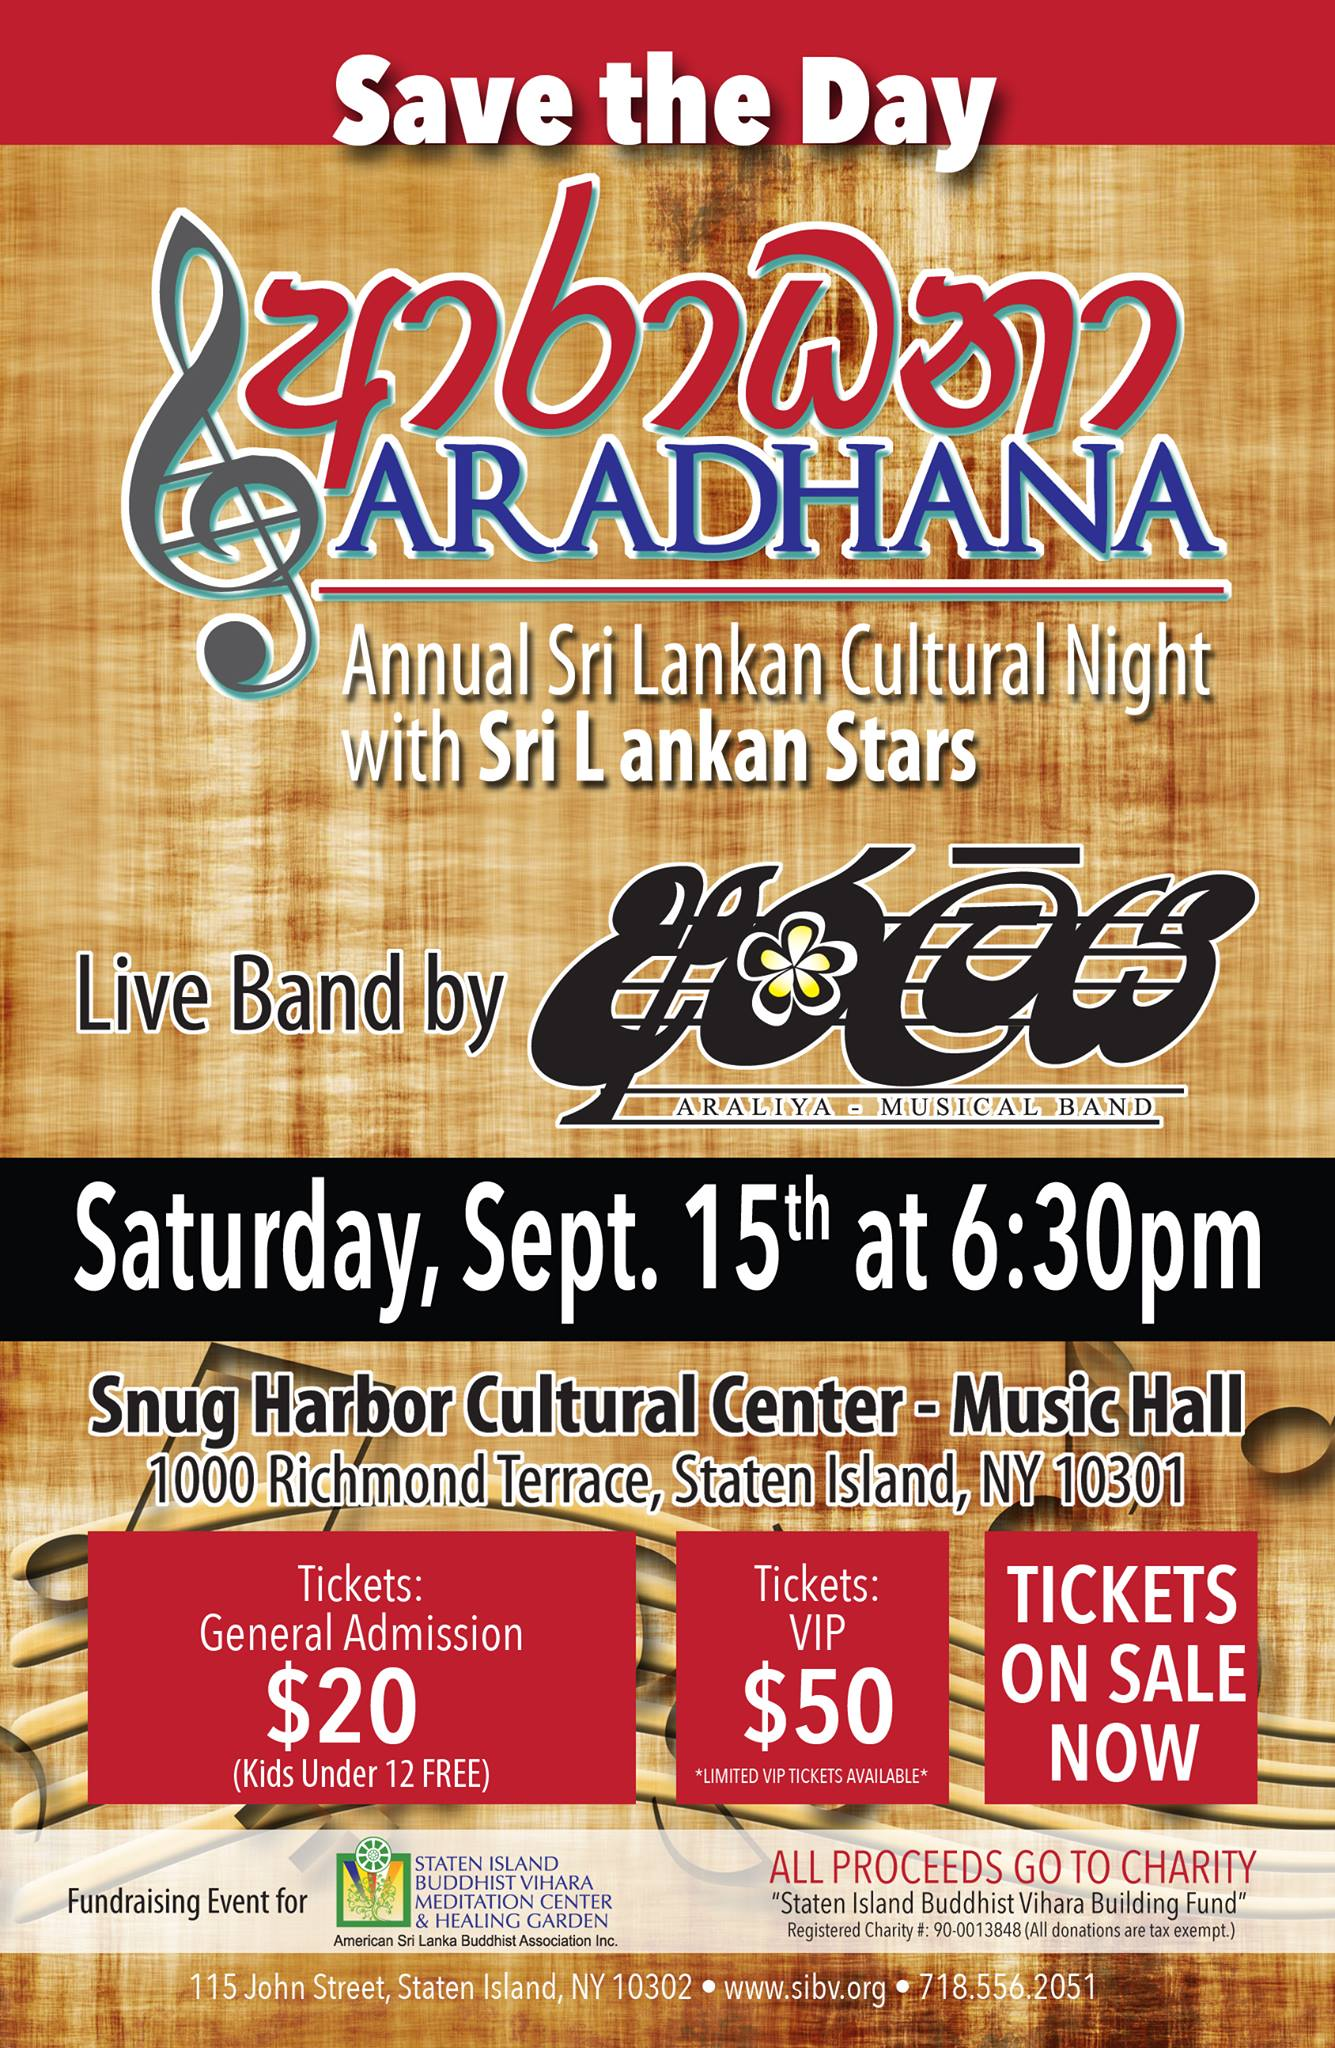 Aradhana Annual Sri Lankan Cultural Night